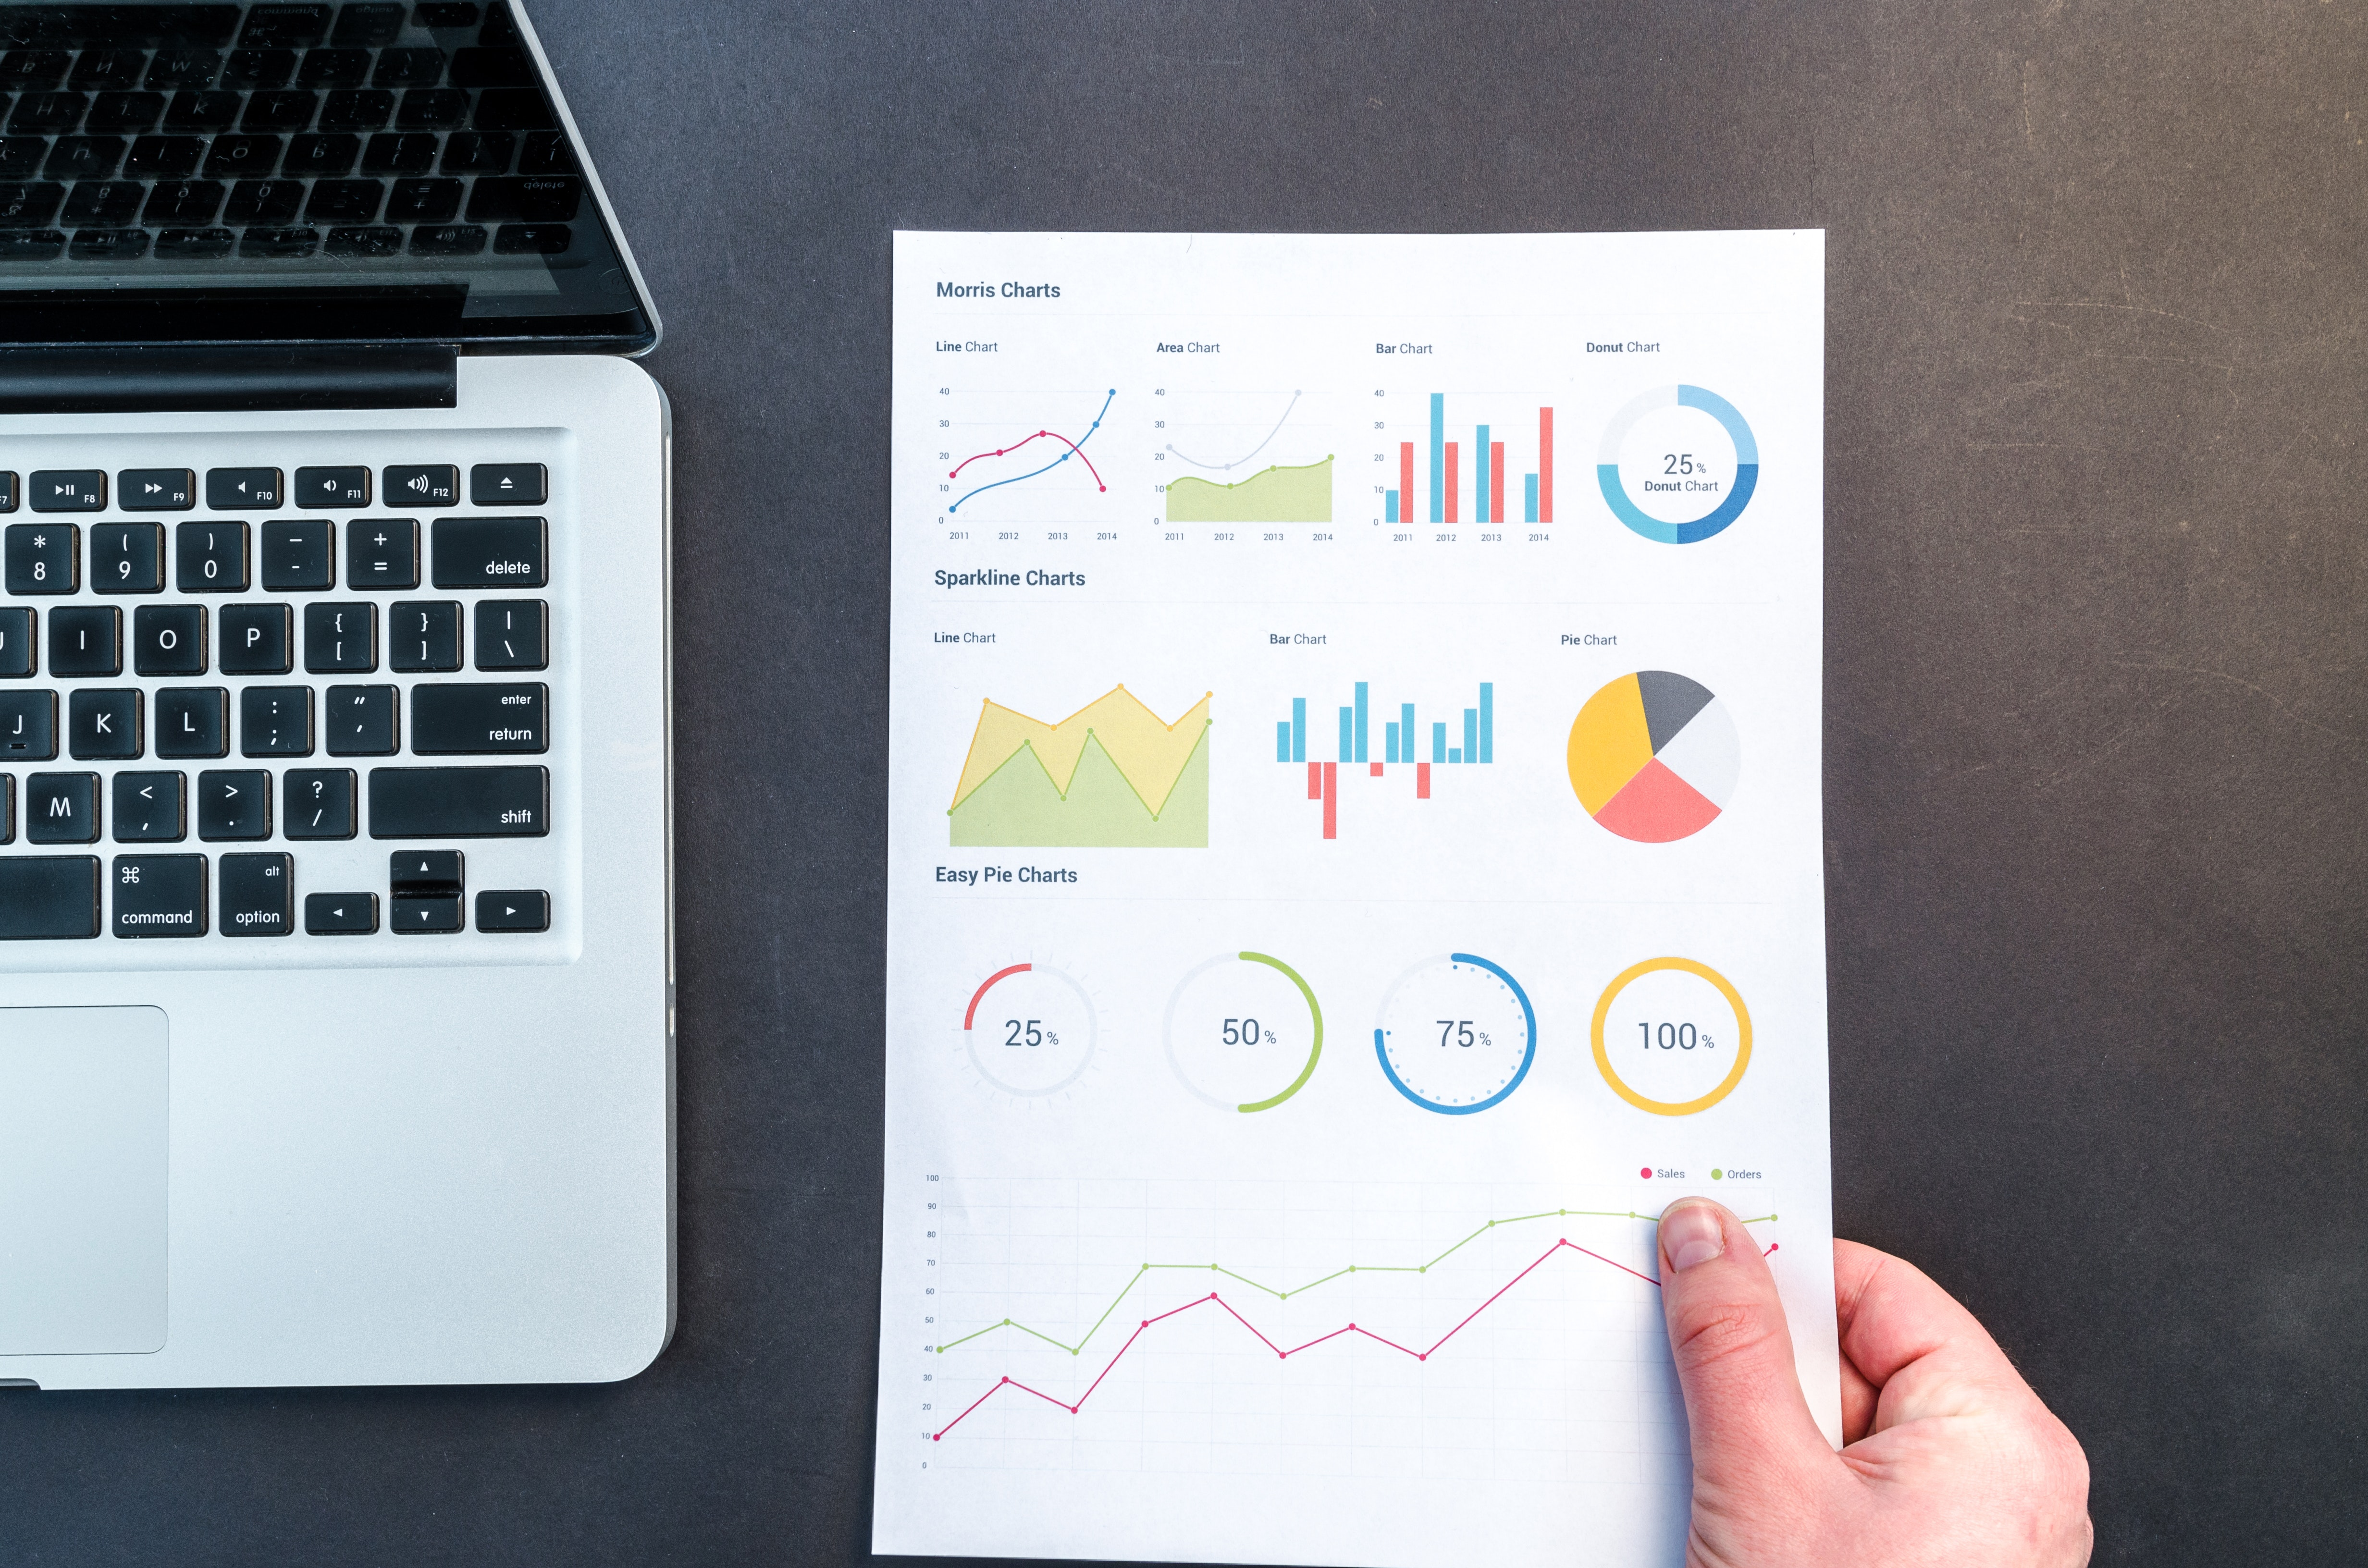 Person Holding Chart And Bar Graph, Charts, Laptop, Table, Survey, HQ Photo